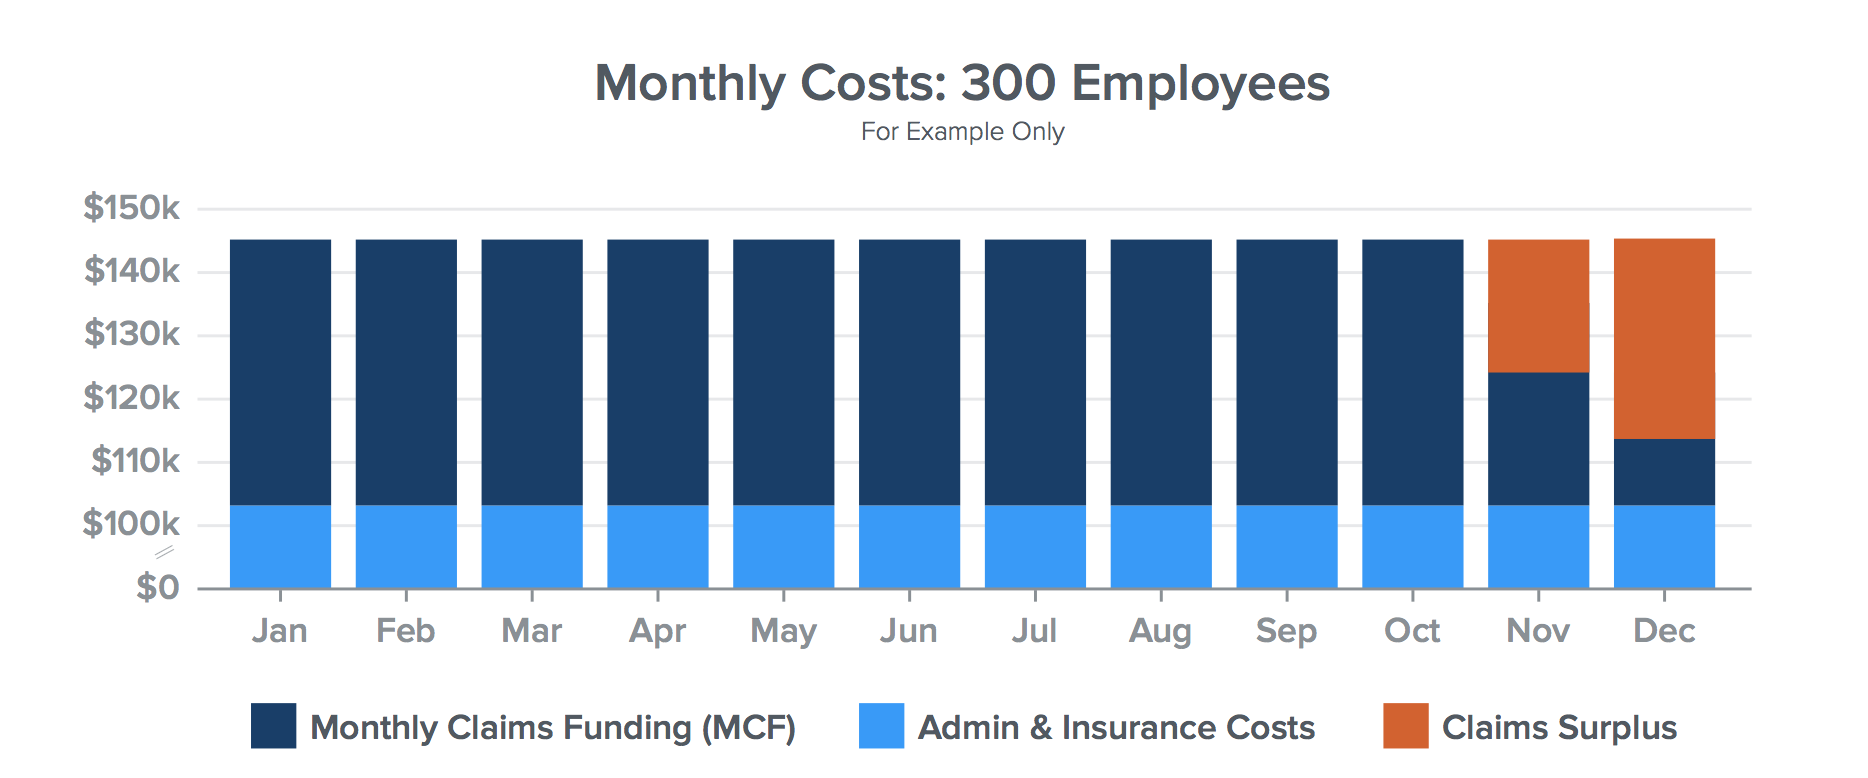 Benefits Cost Data